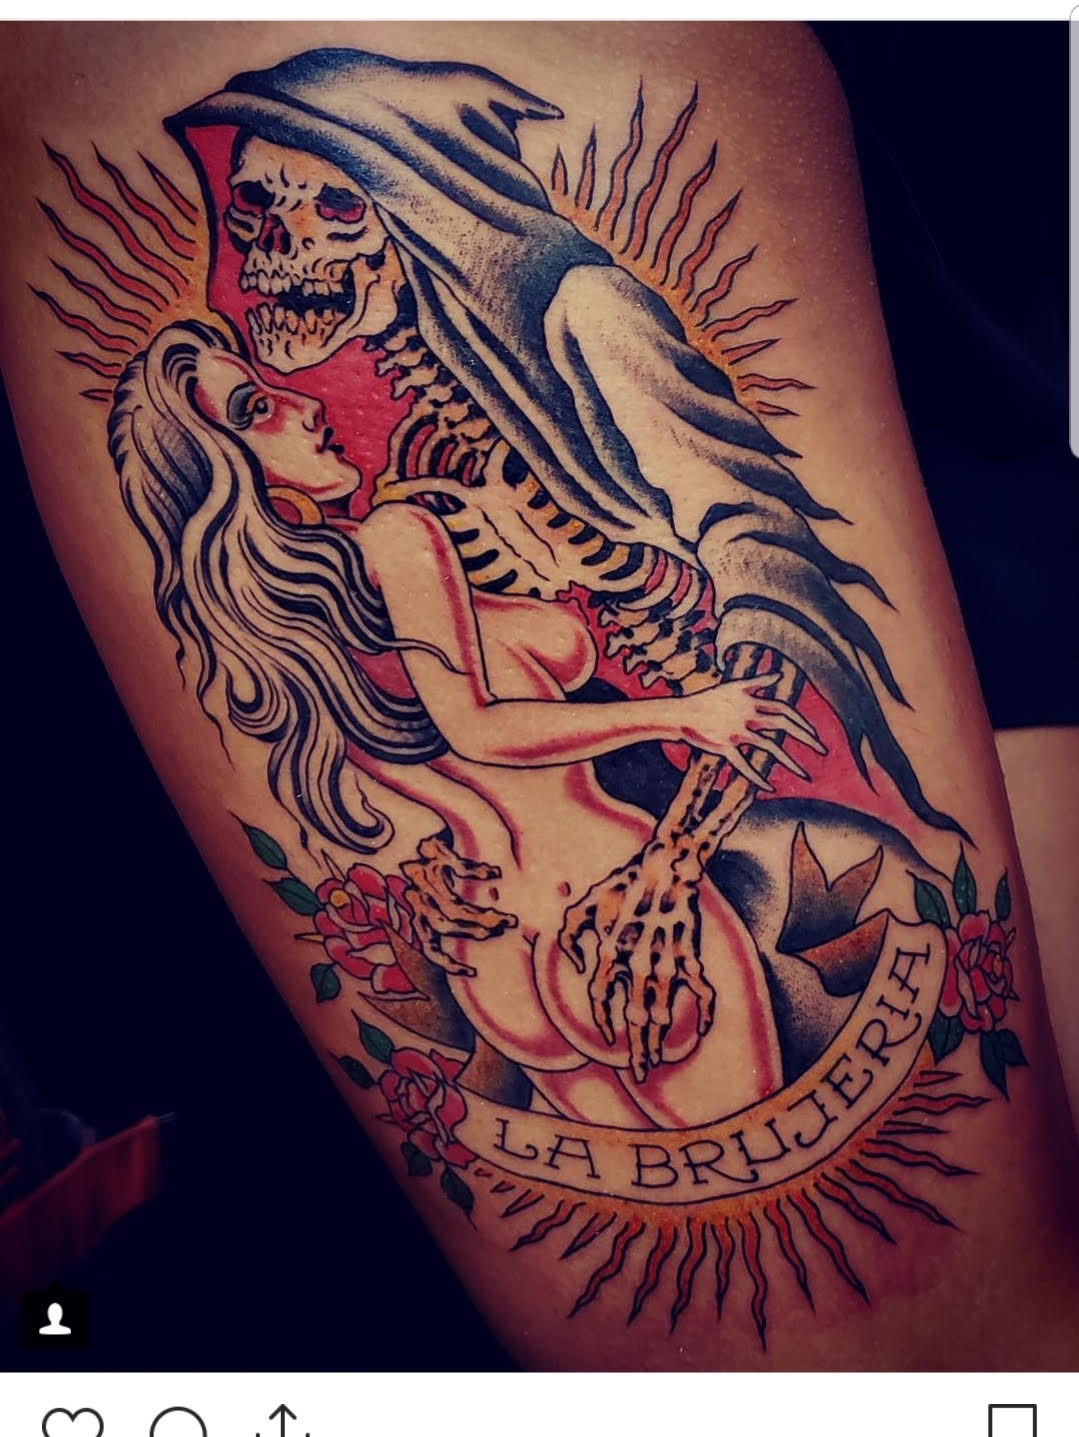 lady-and-skeleteon-tattoo-david-parker.jpg